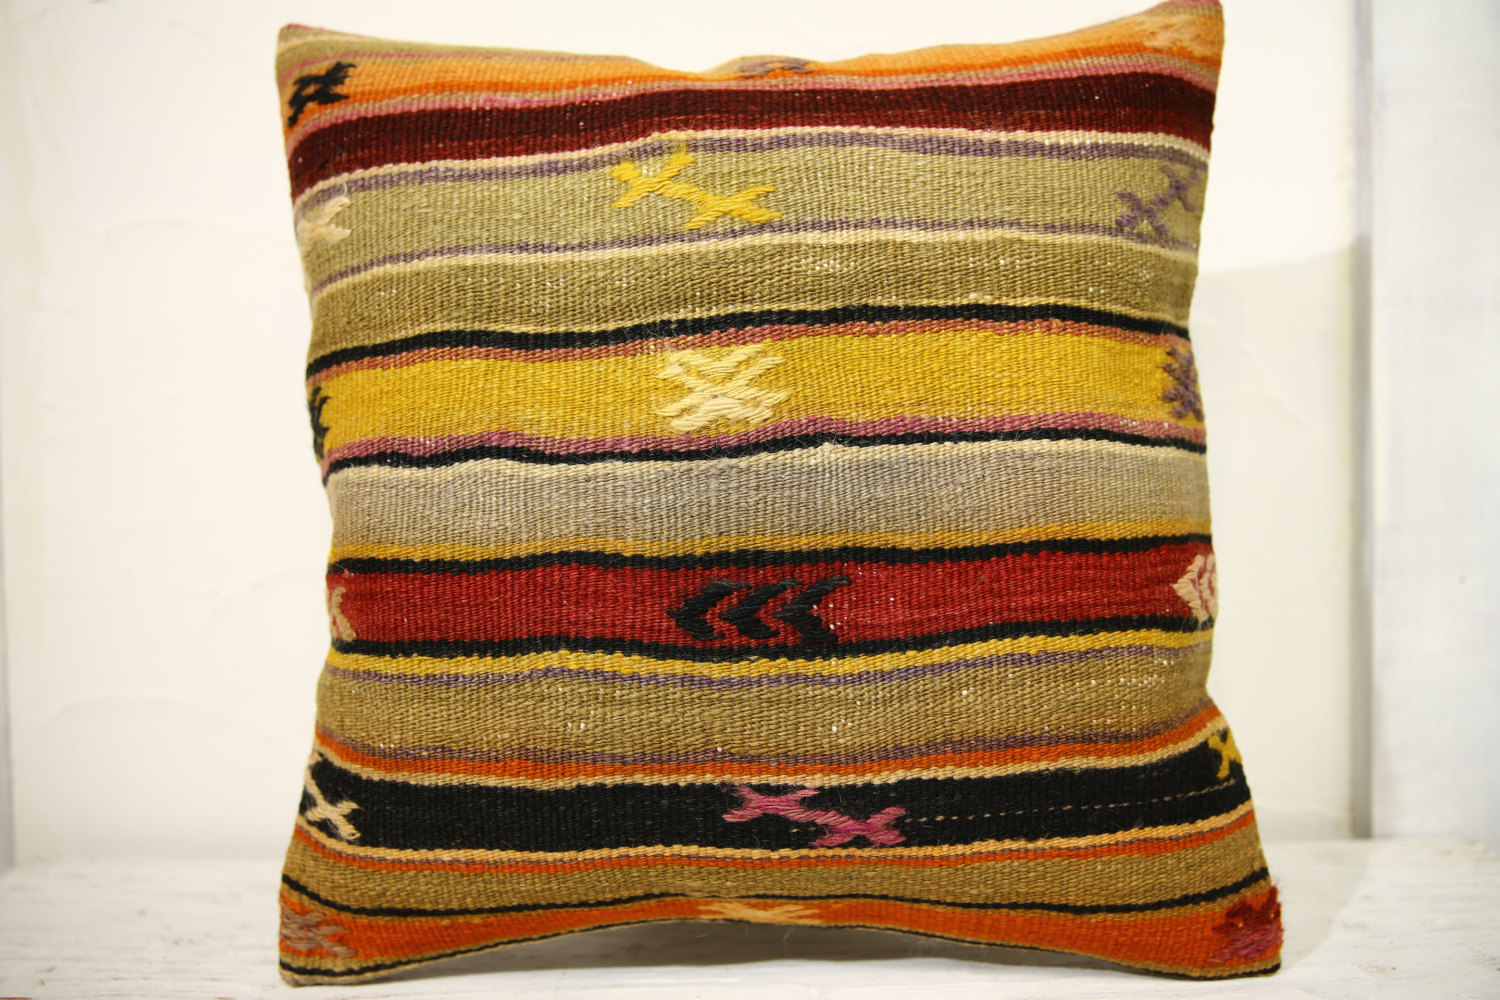 Kilim Pillows | 20x20 | Decorative Pillows | 672 | Accent Pillows, Kilim cushion